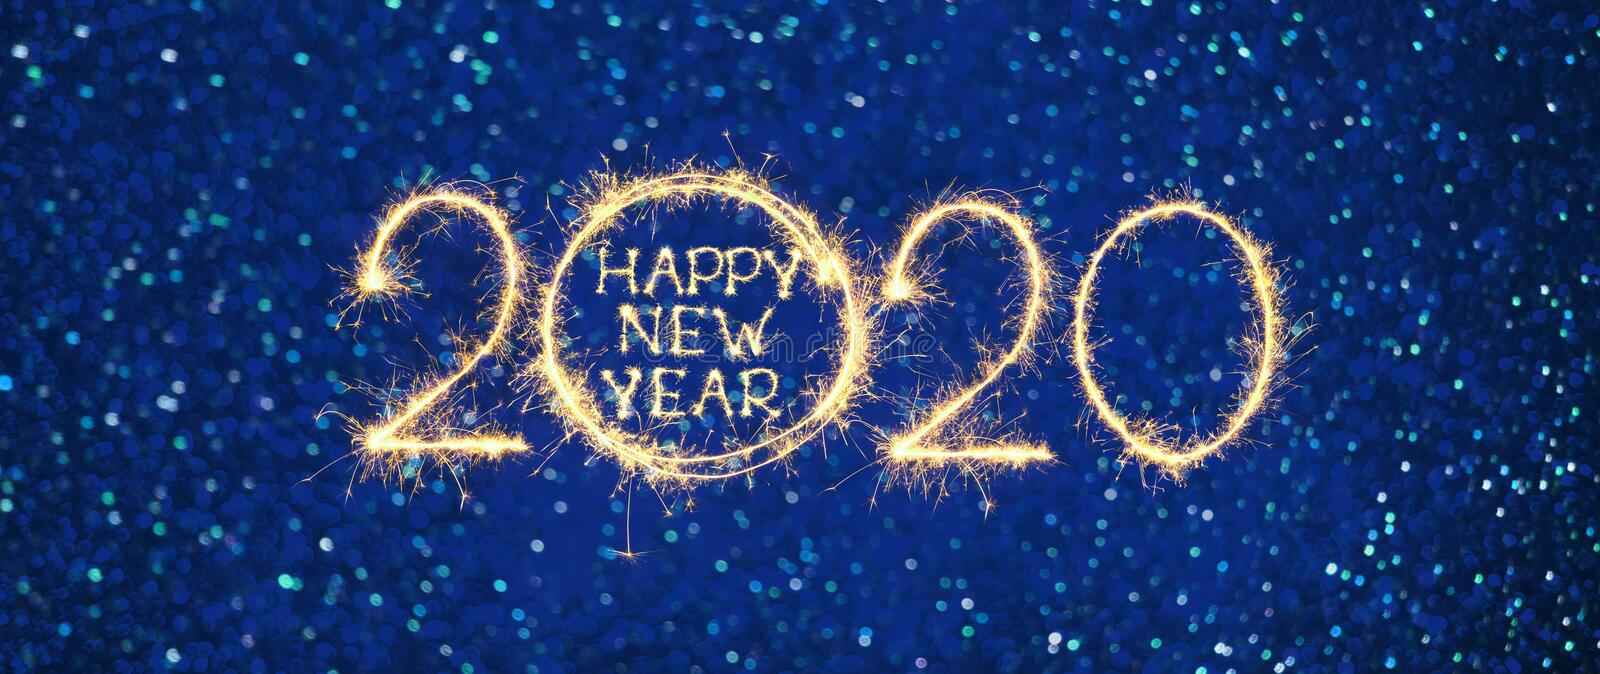 Wide Angle Greeting card Happy New Year 2020 stock photos